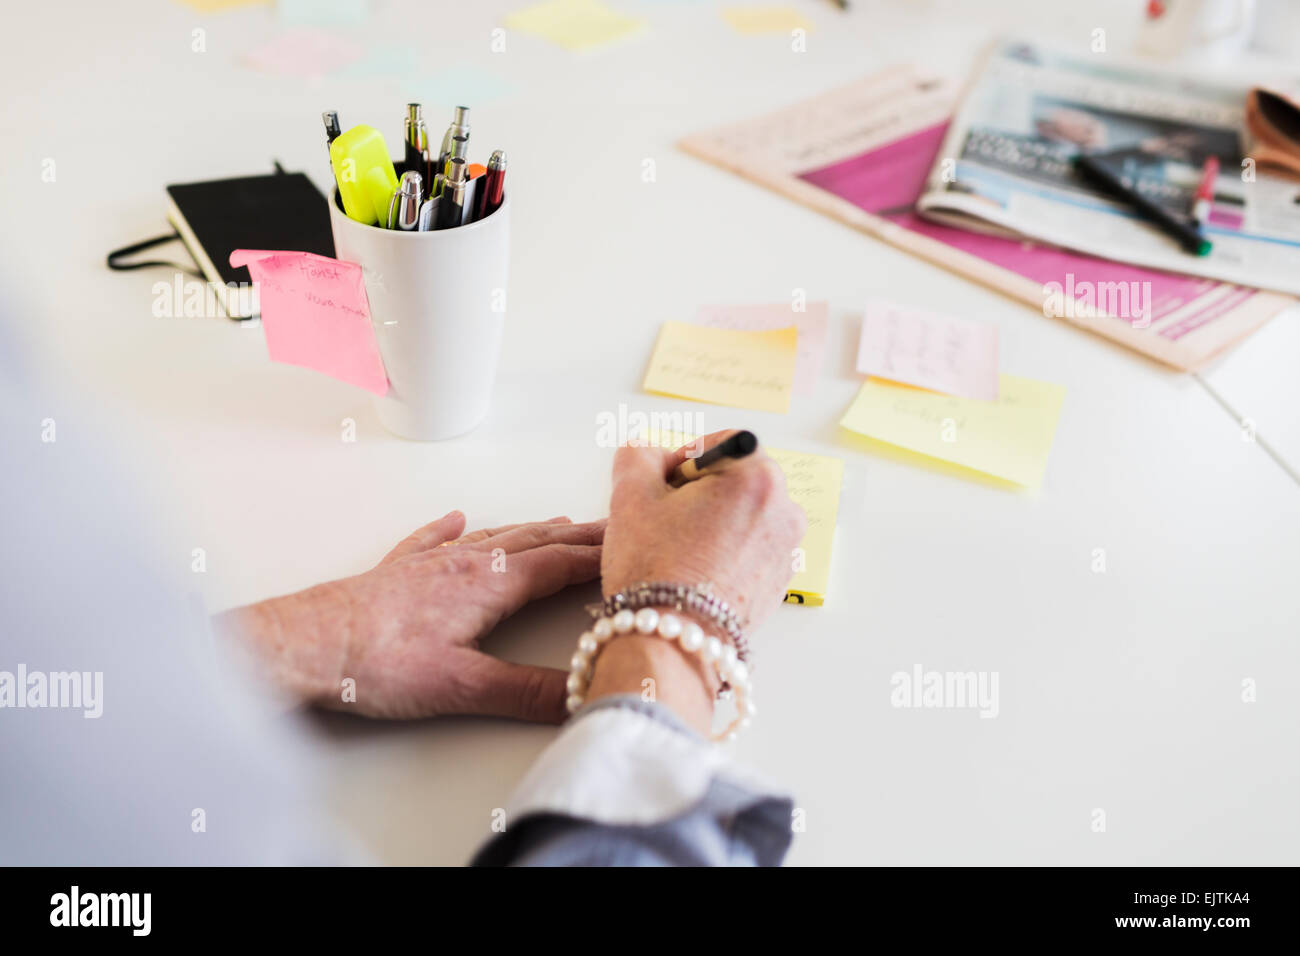 Cropped image of businesswoman writing reminder at office desk - Stock Image